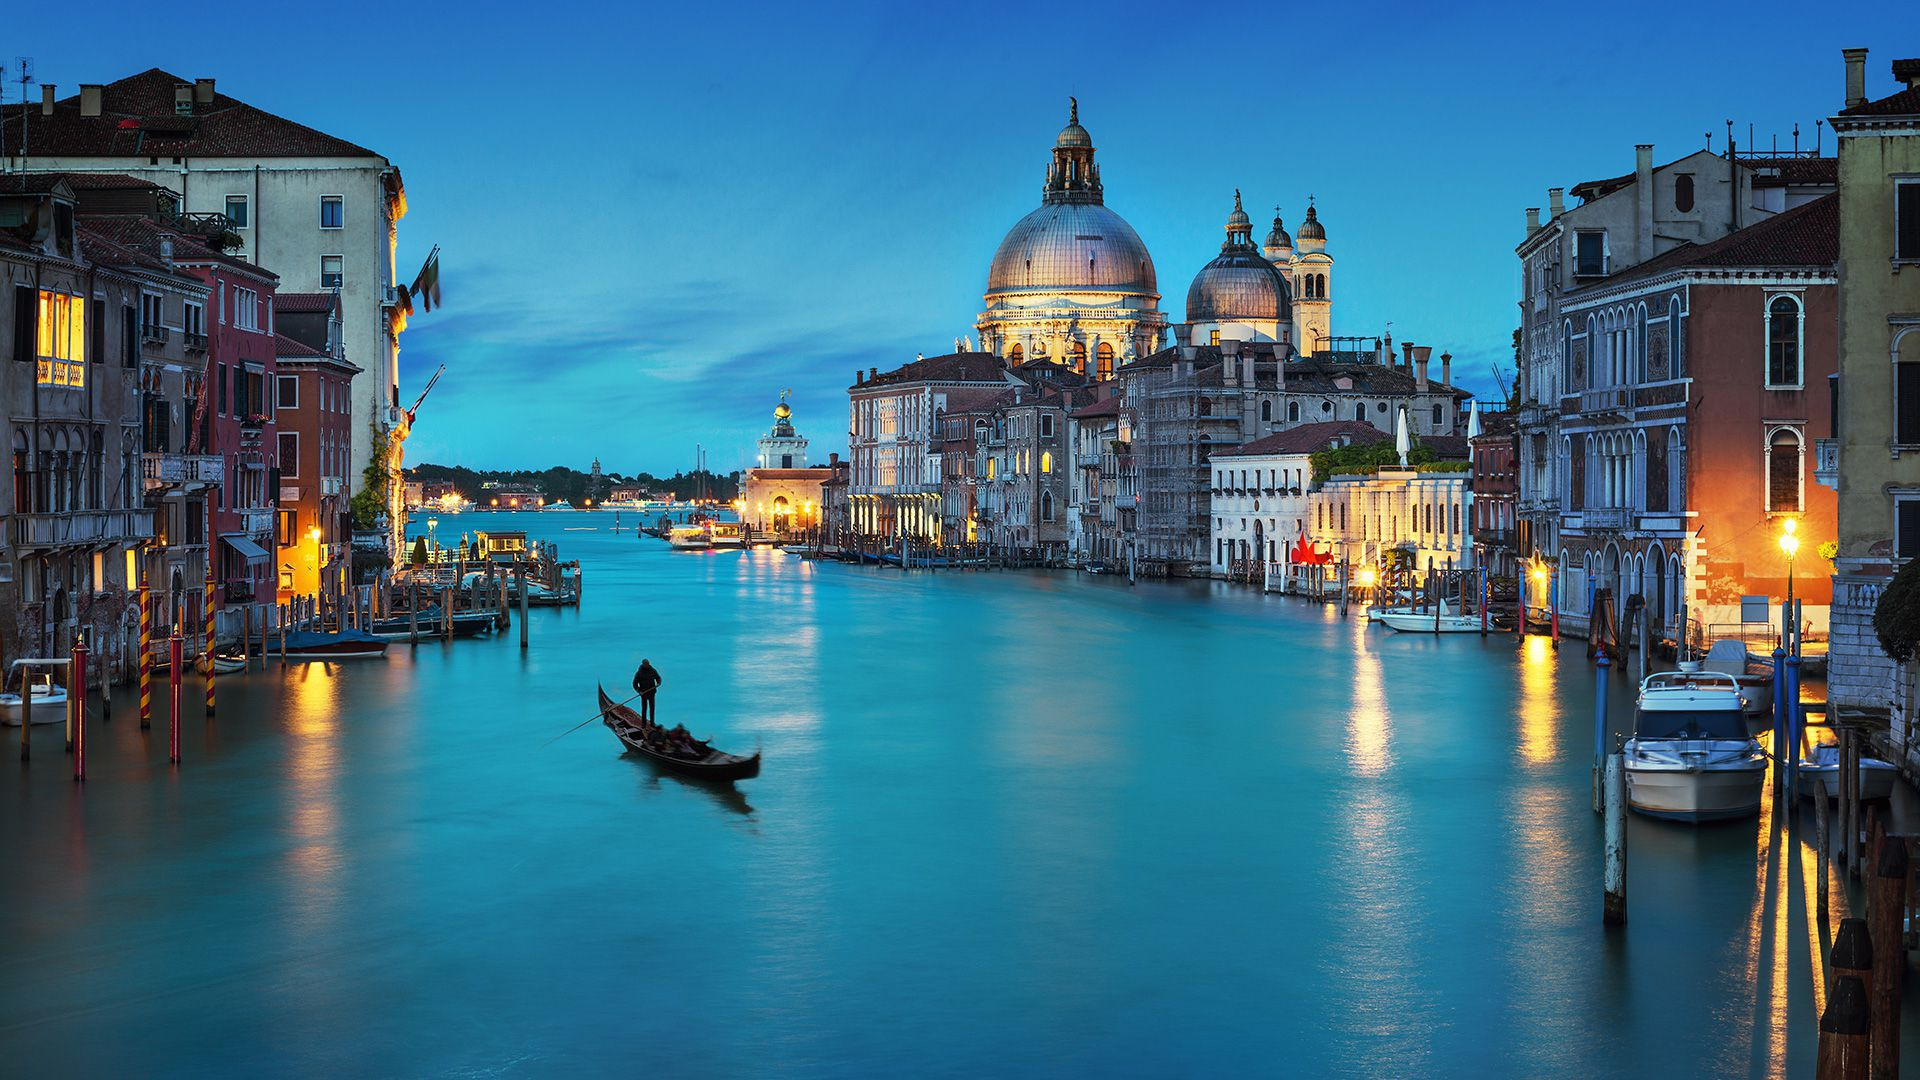 Venice wallpapers images photos pictures backgrounds - Wallpaper photos ...